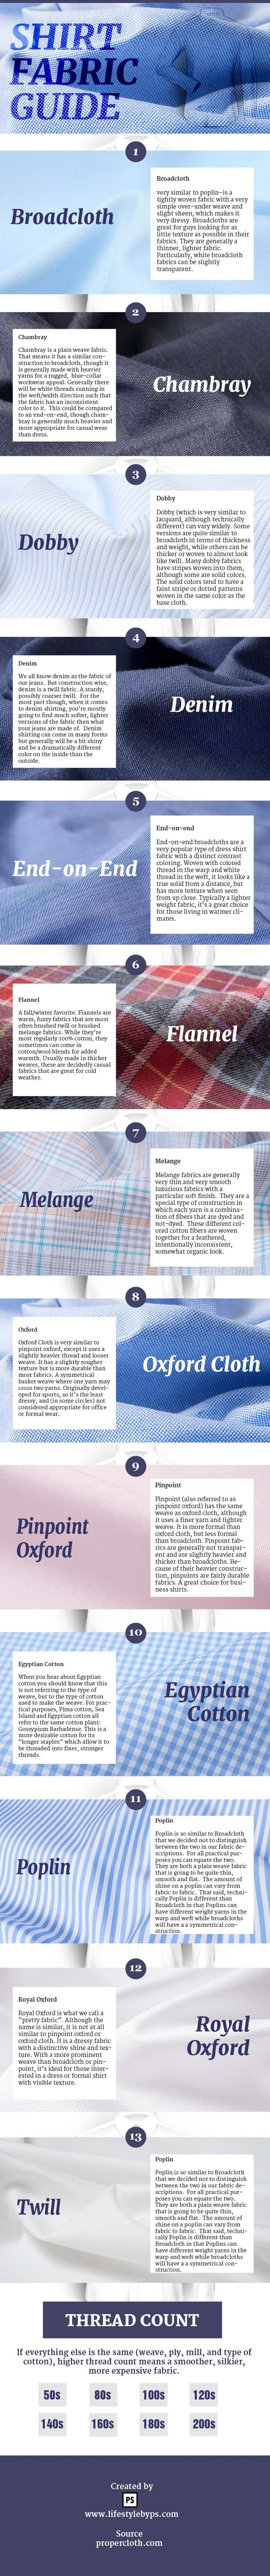 Different type of shirts fabric Infographic #fabric #style #menstyle #menswear